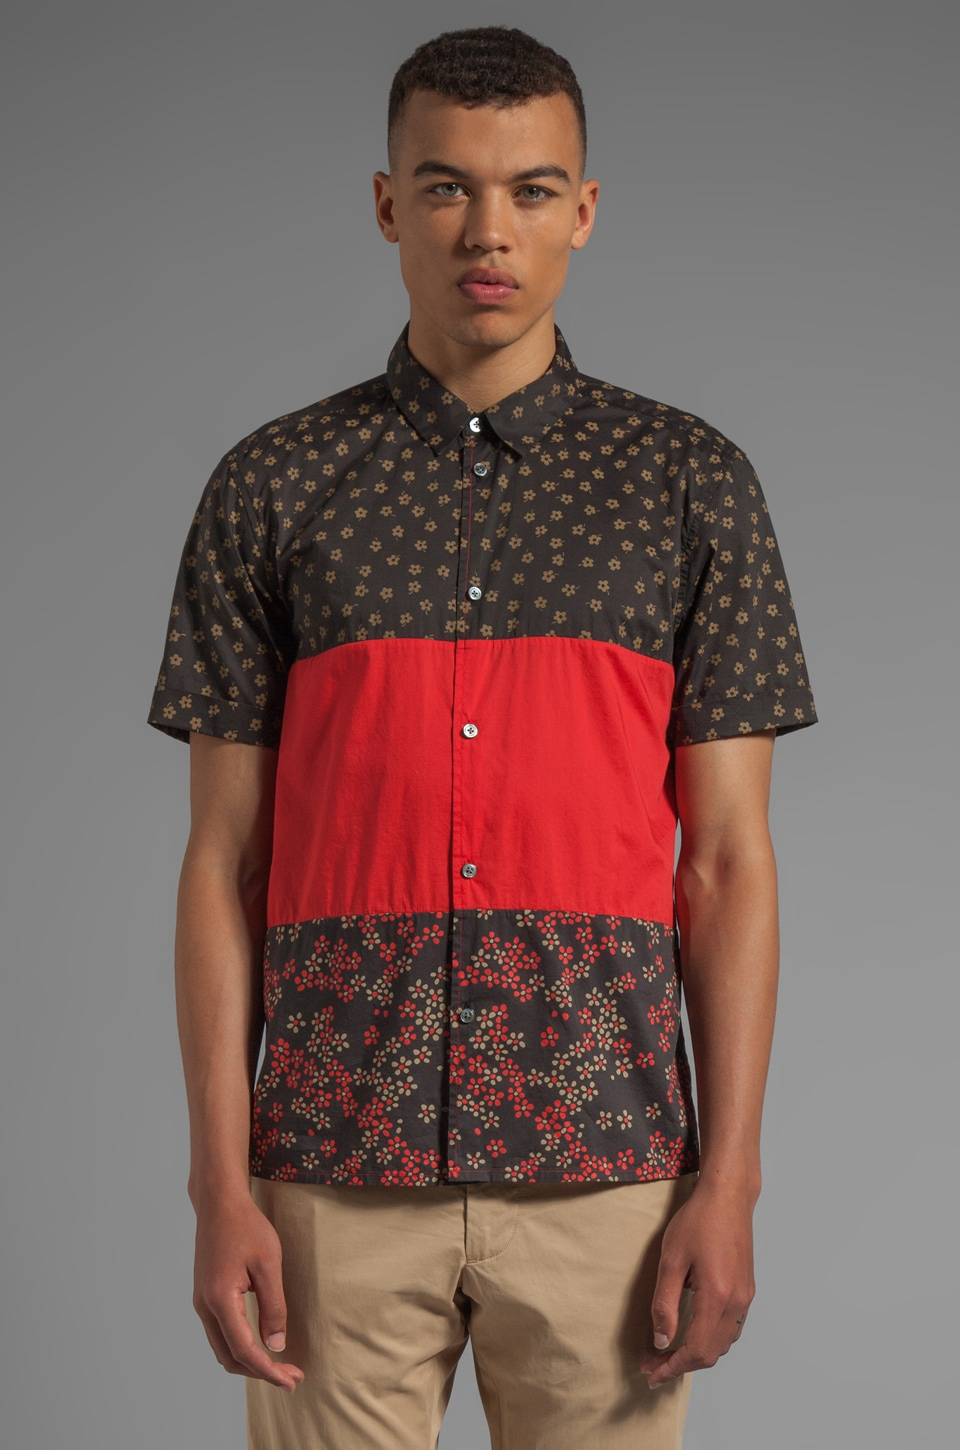 Marc by Marc Jacobs Ace Floral Shirting in Washed Ink Multi